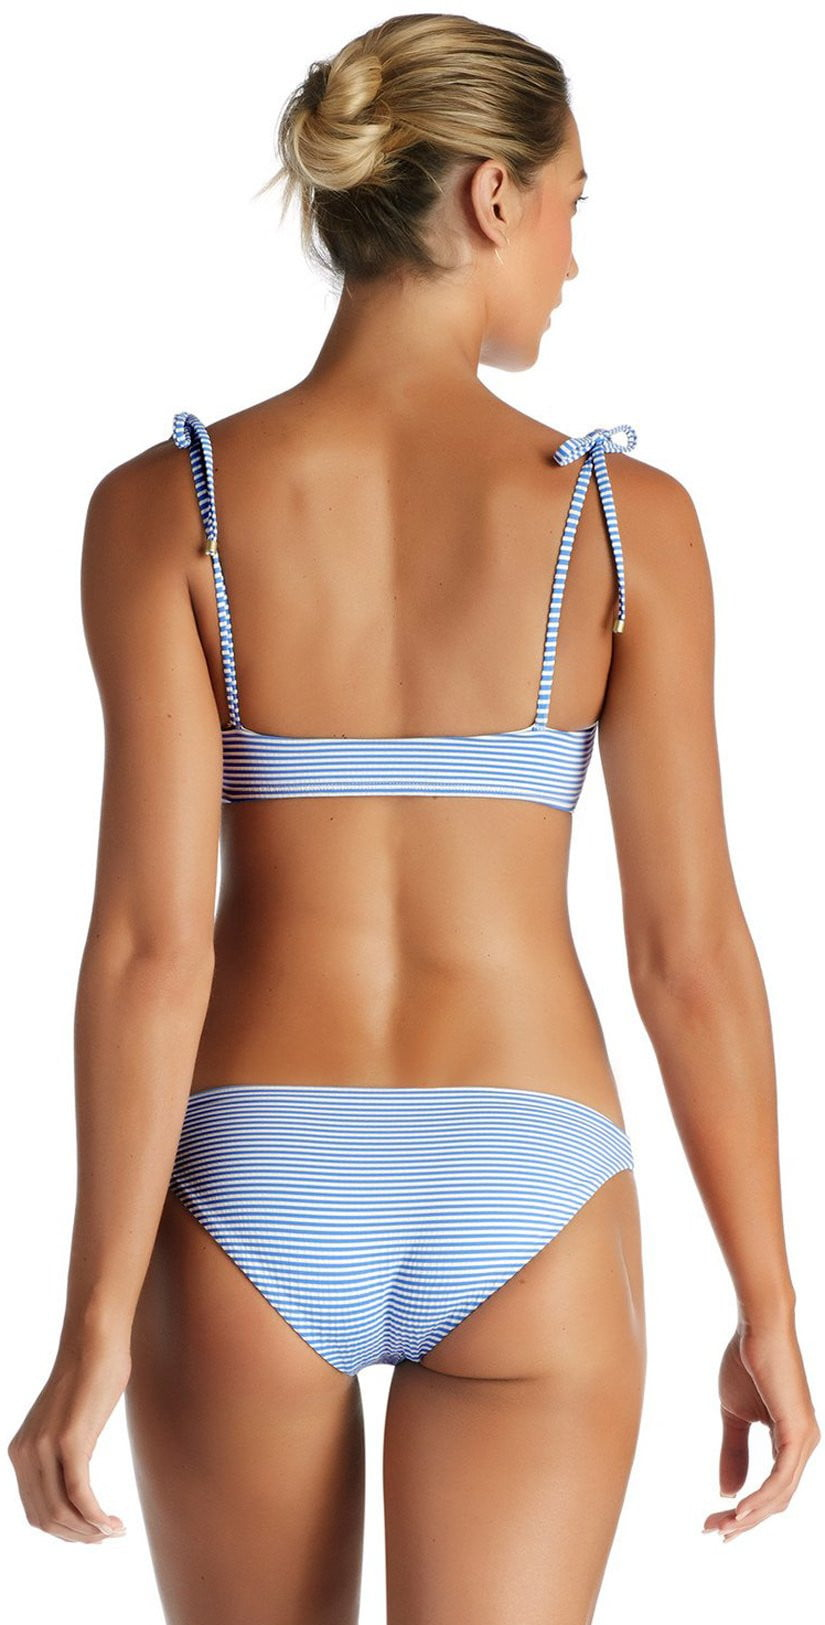 Vitamin A Hamptons Stripe Luciana Full Coverage Bikini Bottom 167BF-HAM back view of model